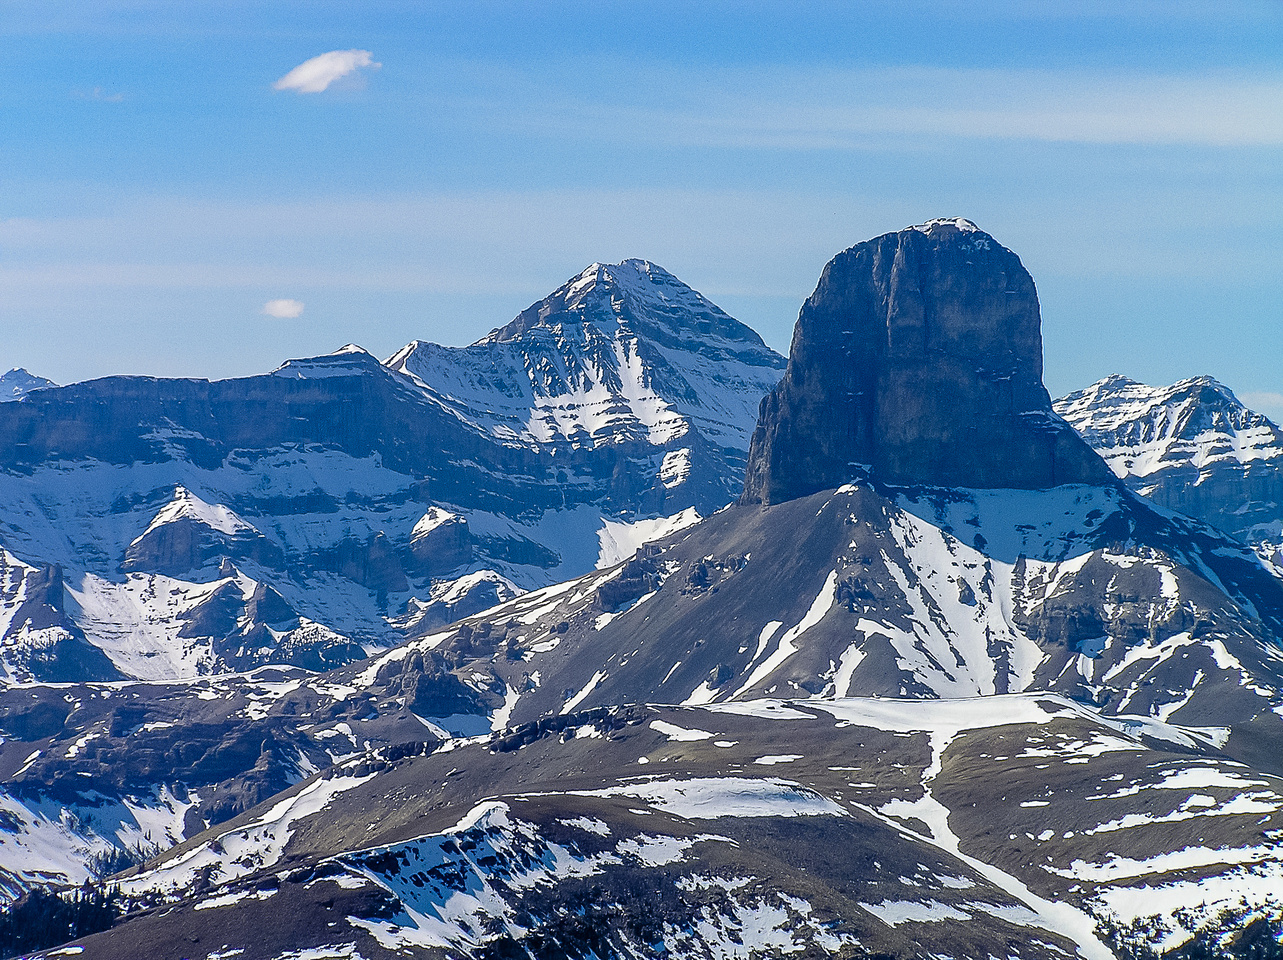 Devils Head from the summit of Black Rock Mountain. I would finally climb that impressive peak 7 years later in 2012.